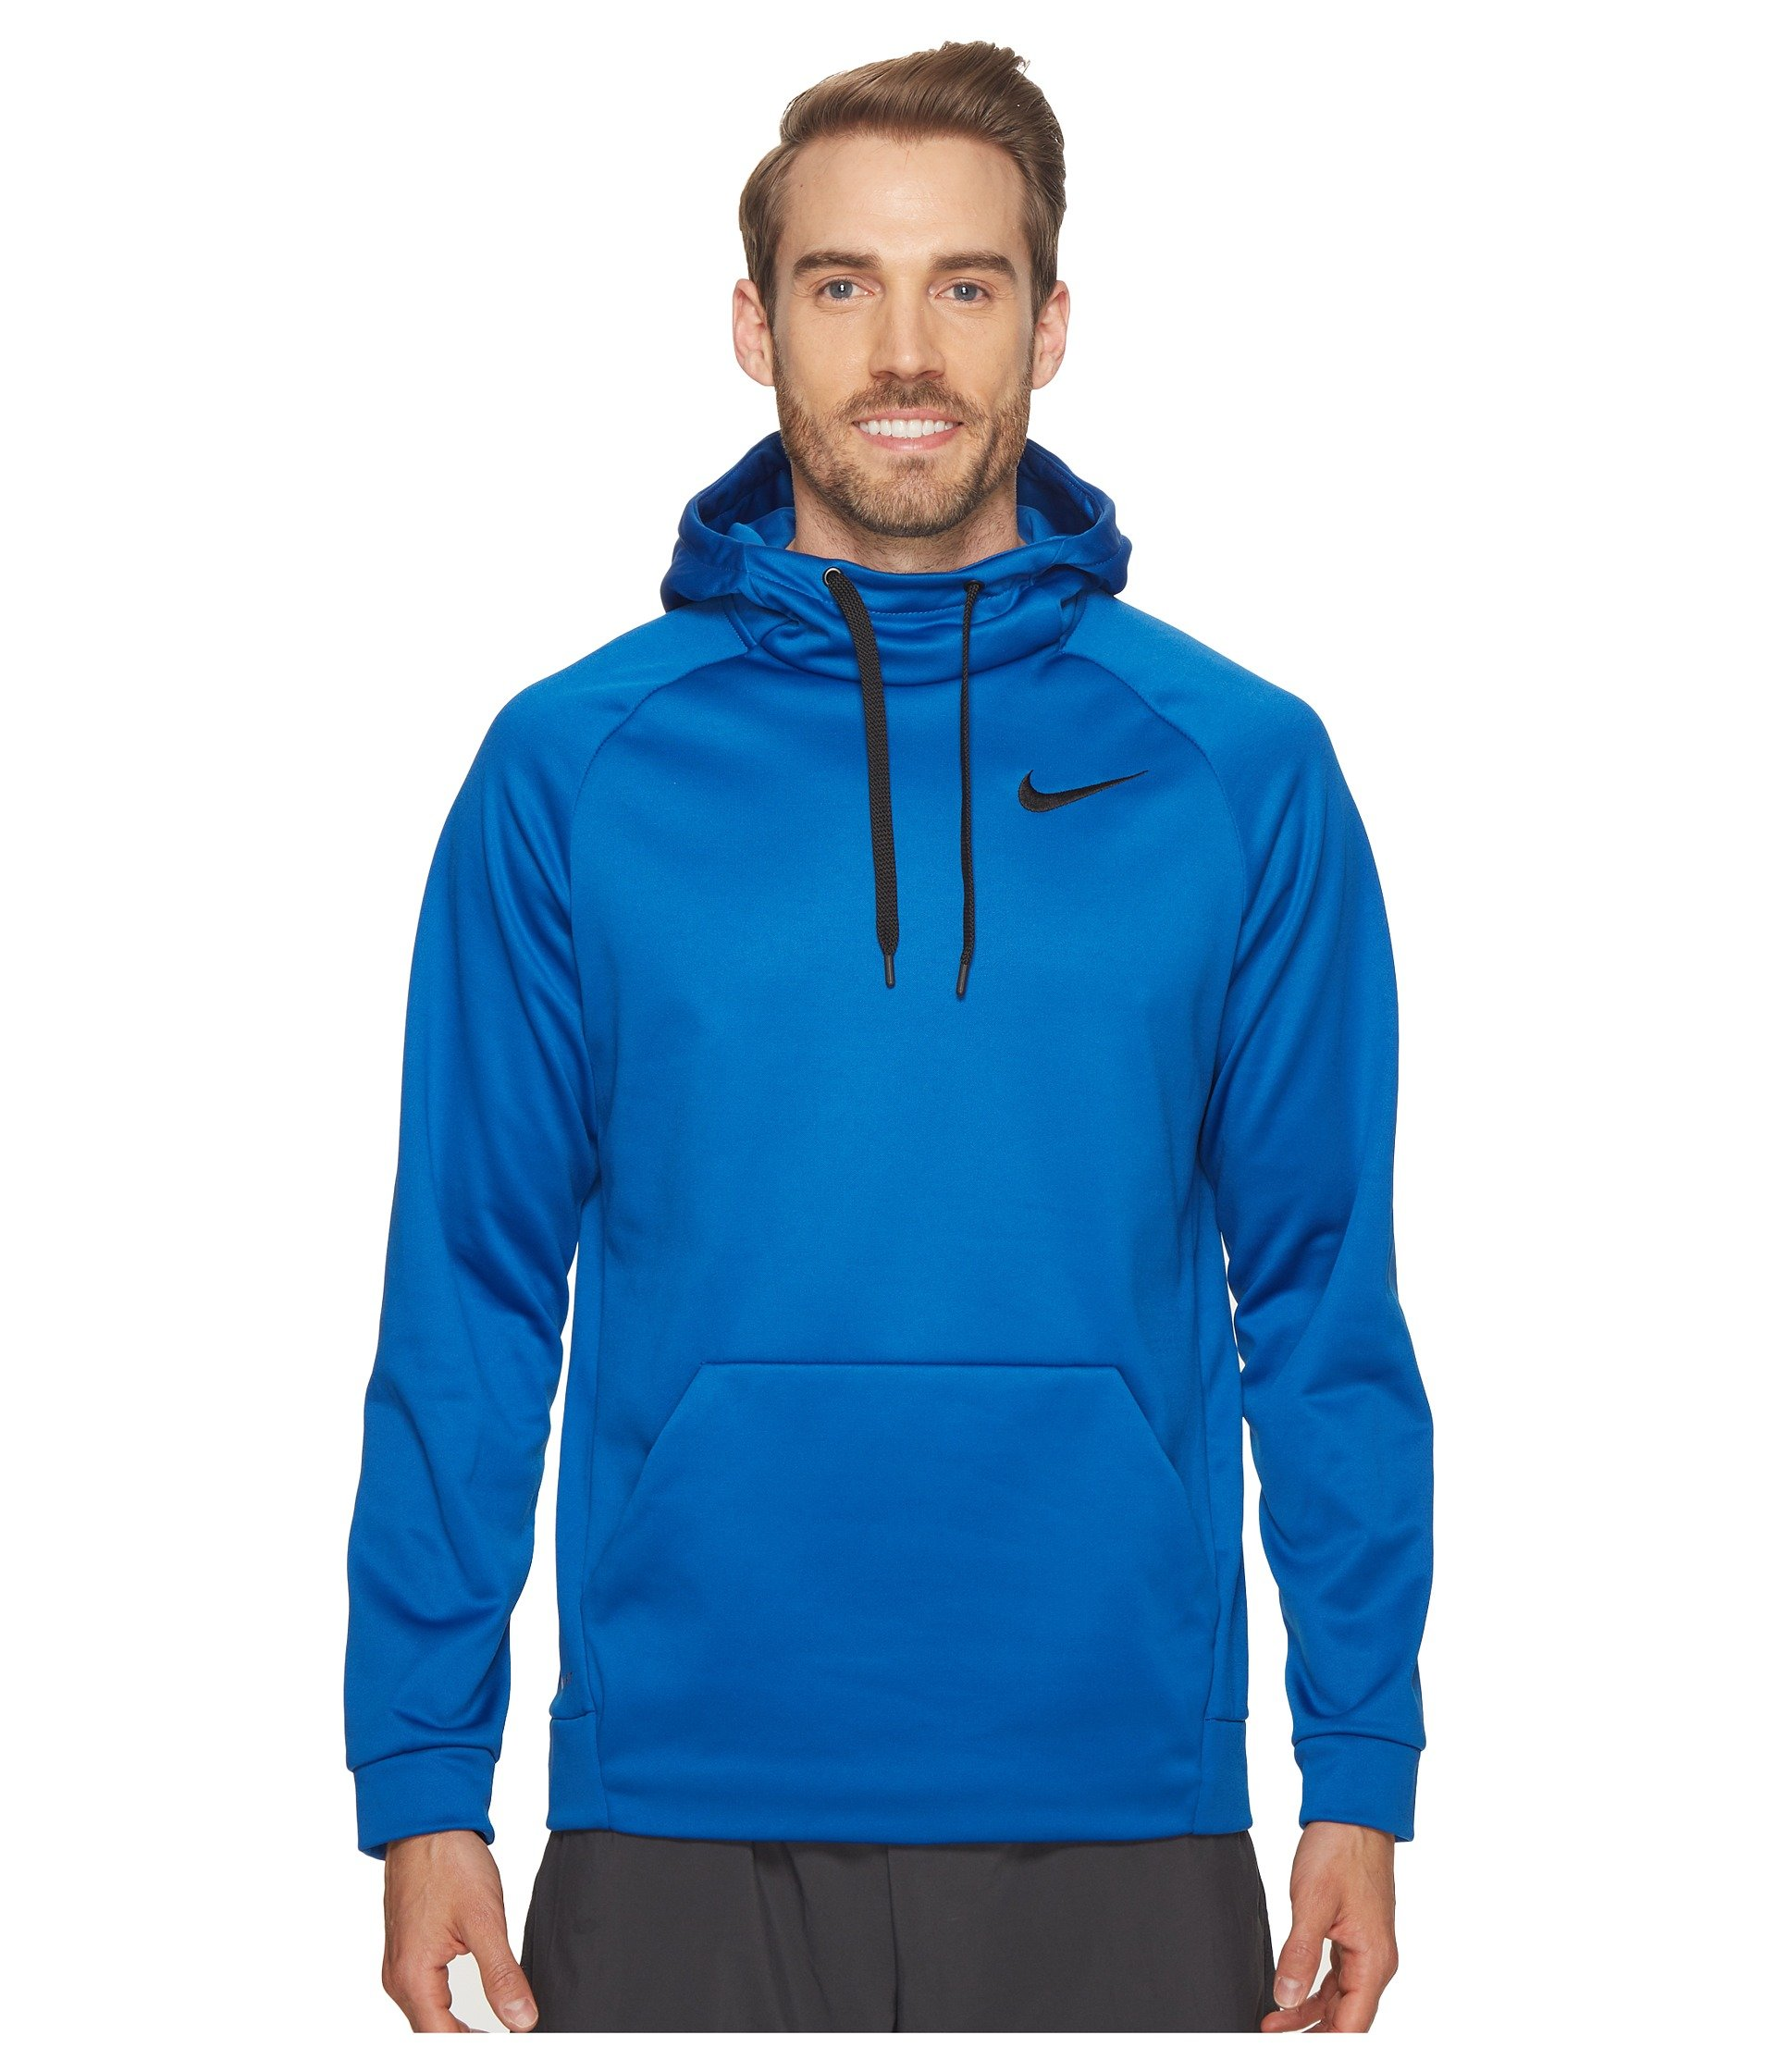 cb54910cca52 Galleon - Nike Mens Therma Training Pull Over Hooded Sweatshirt Blue  Jay Black 826671-449 Size X-Large